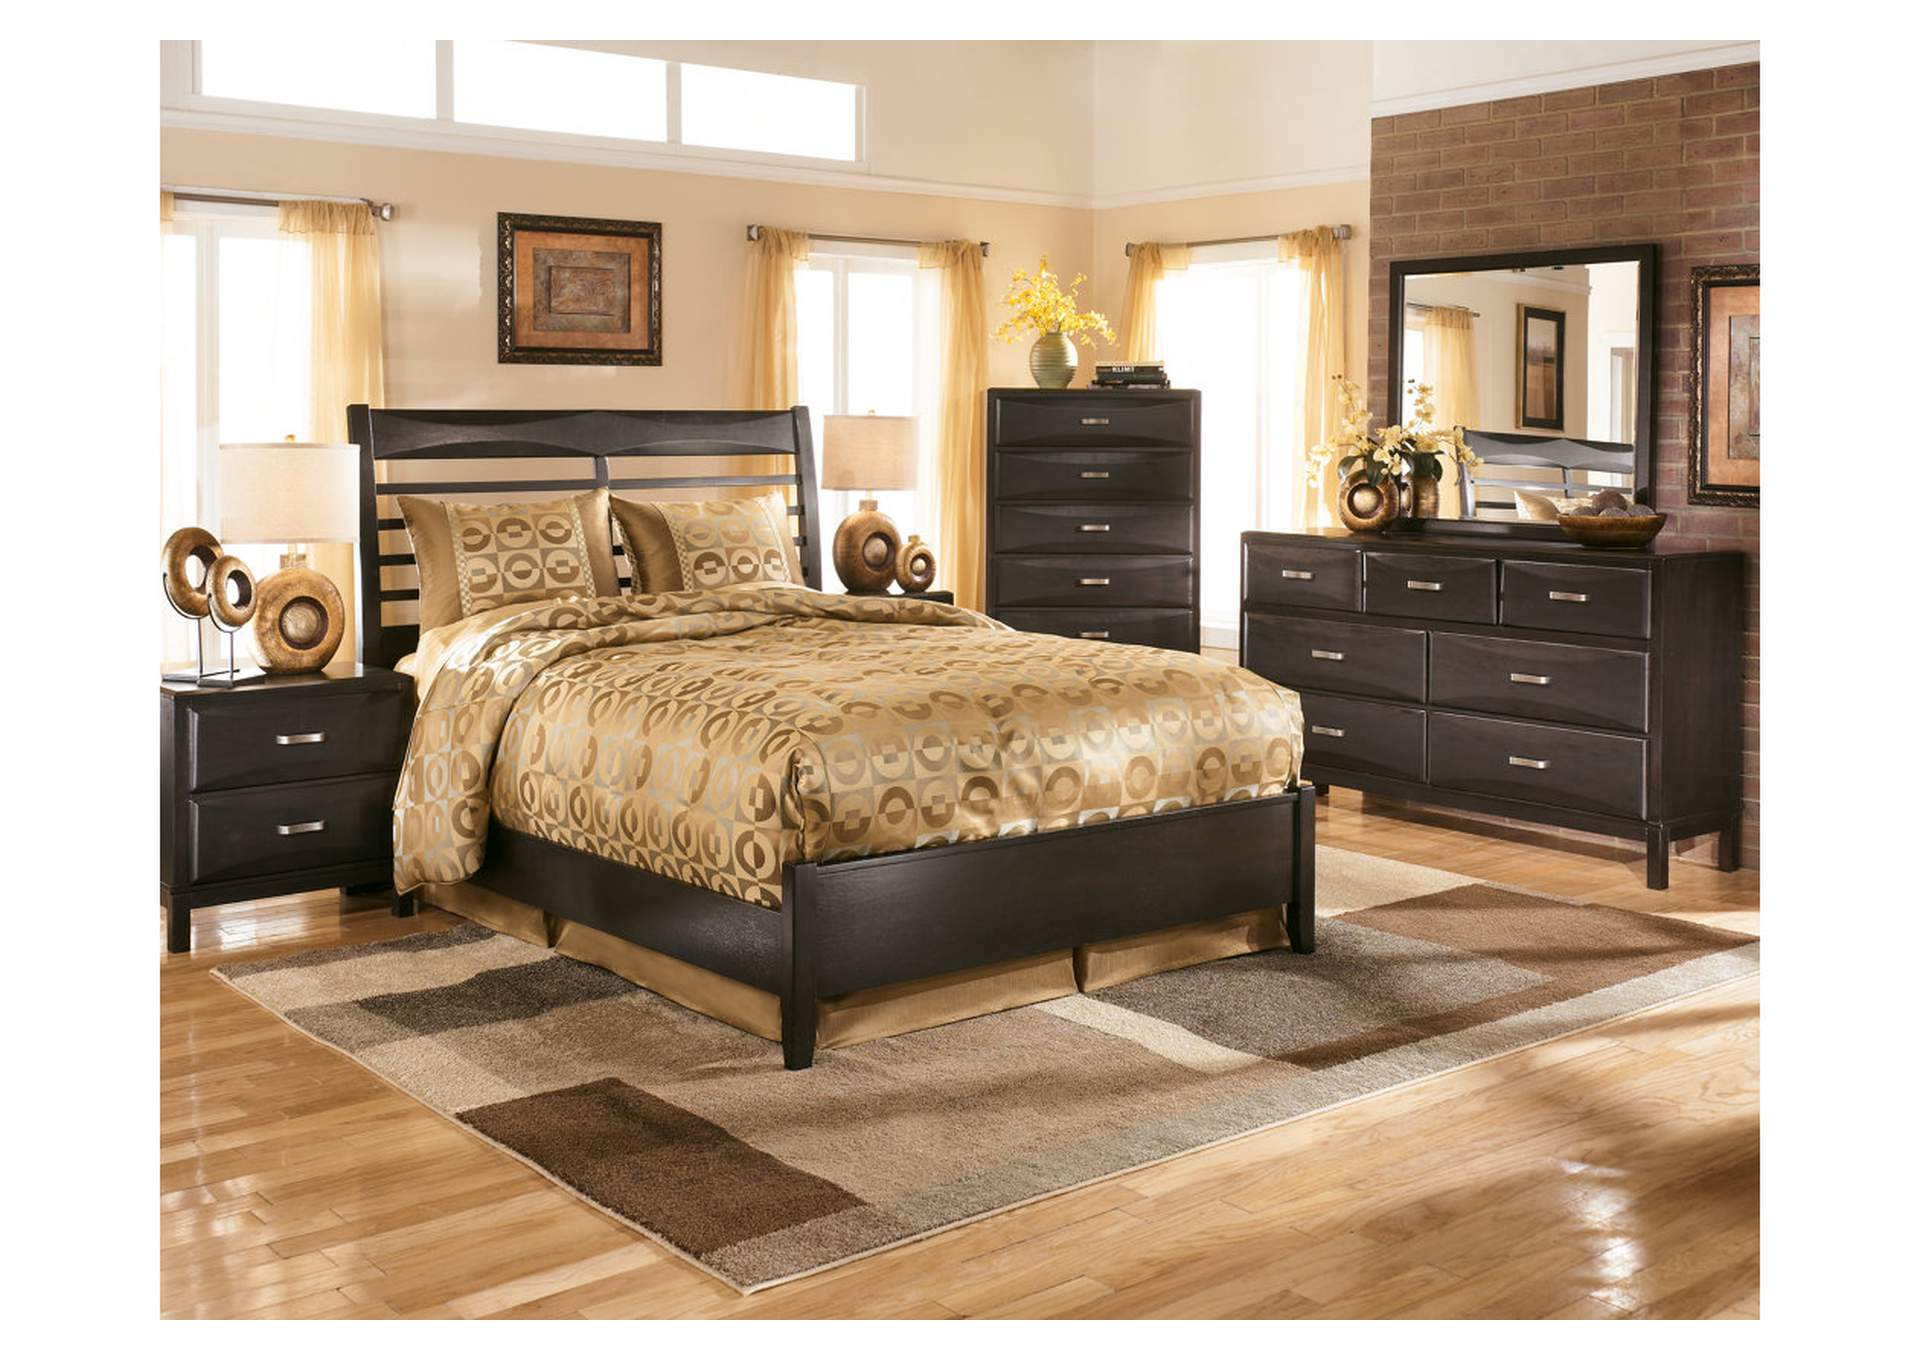 Kira Black Queen Panel Bed w/Dresser & Mirror,Ashley